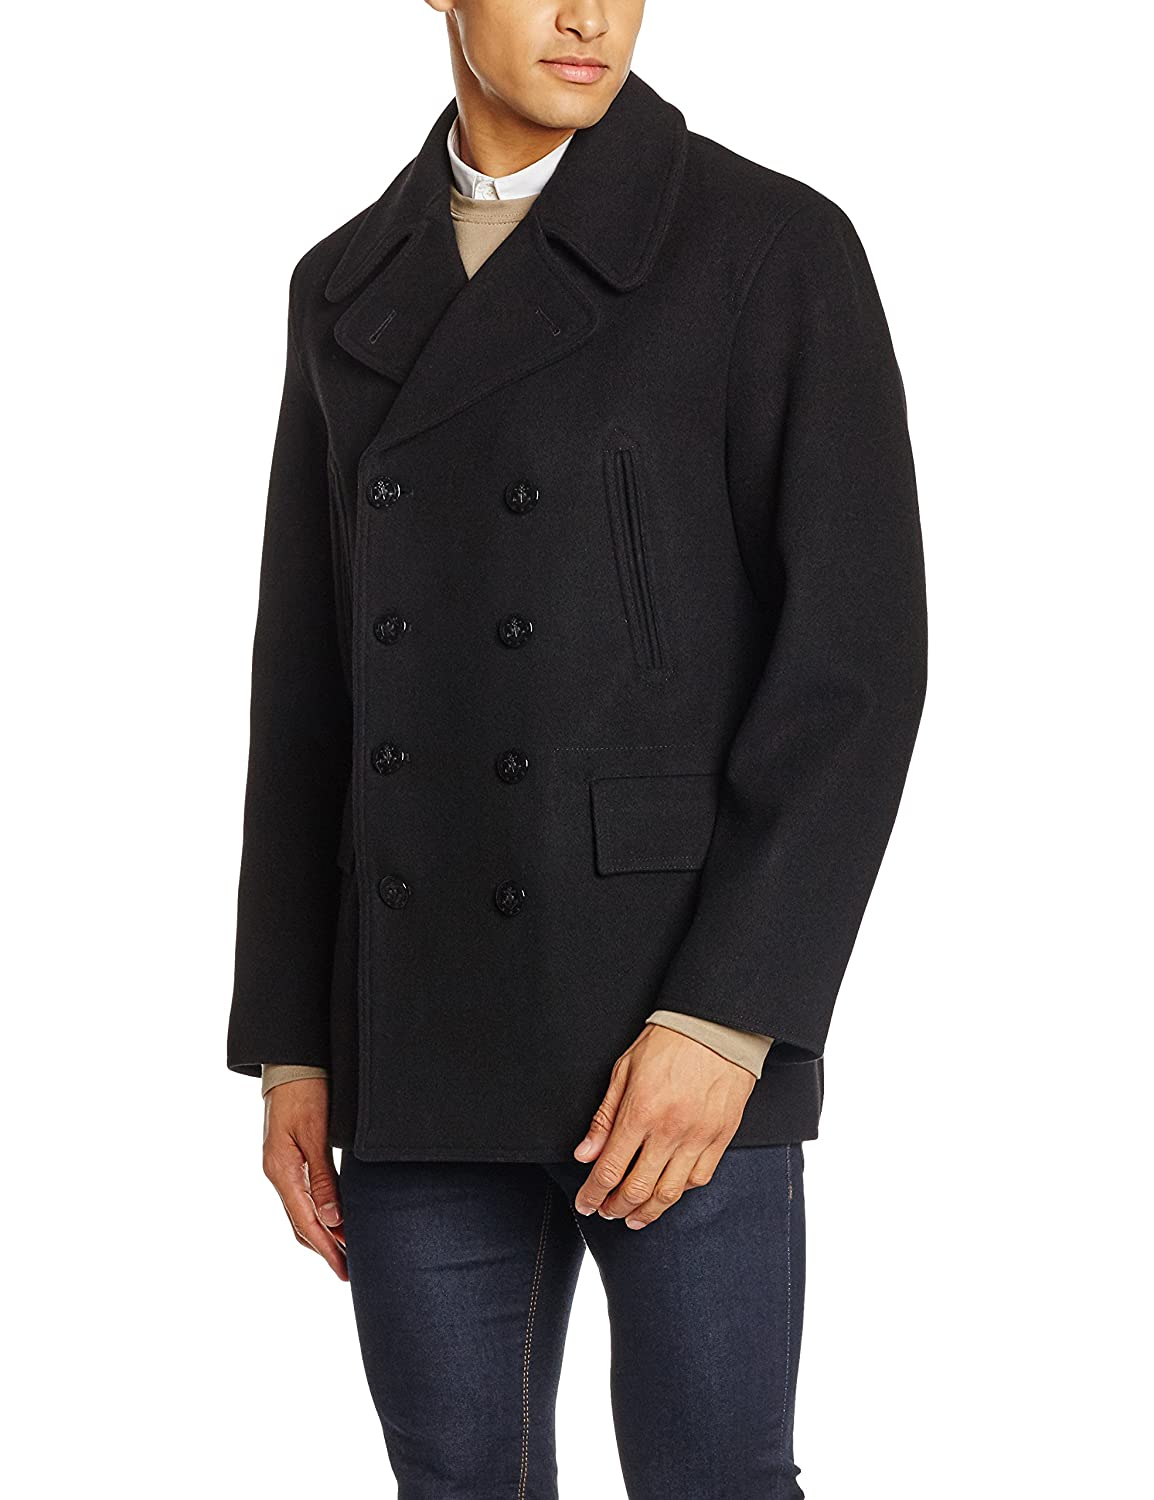 27585e687 Gloverall Men's Churchill Reefer Coat, (Black), Small: Amazon.co.uk ...